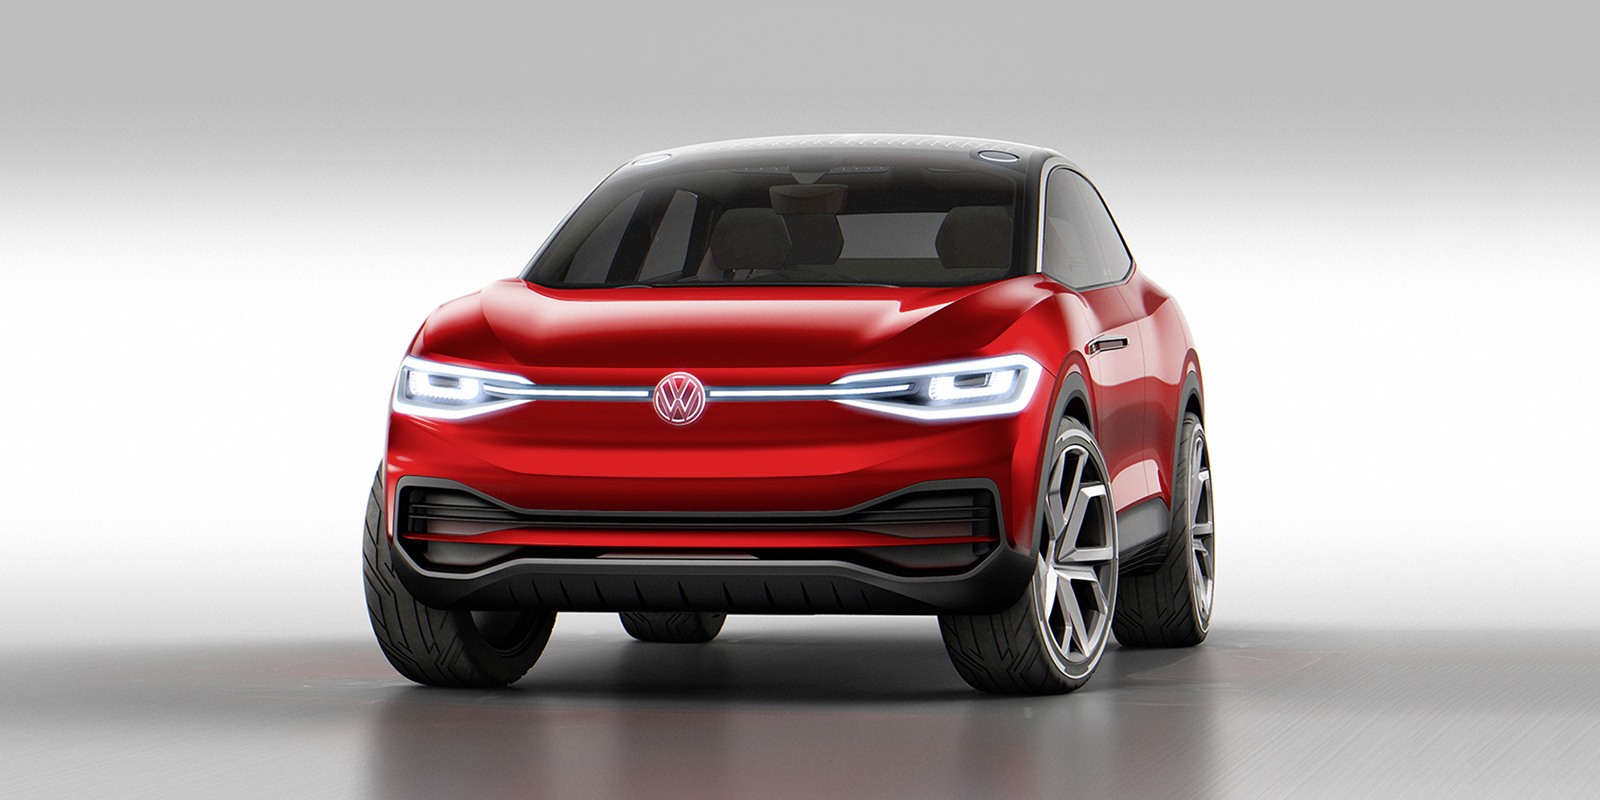 2020 VW ID Crozz electric SUV price specs release date | carwow